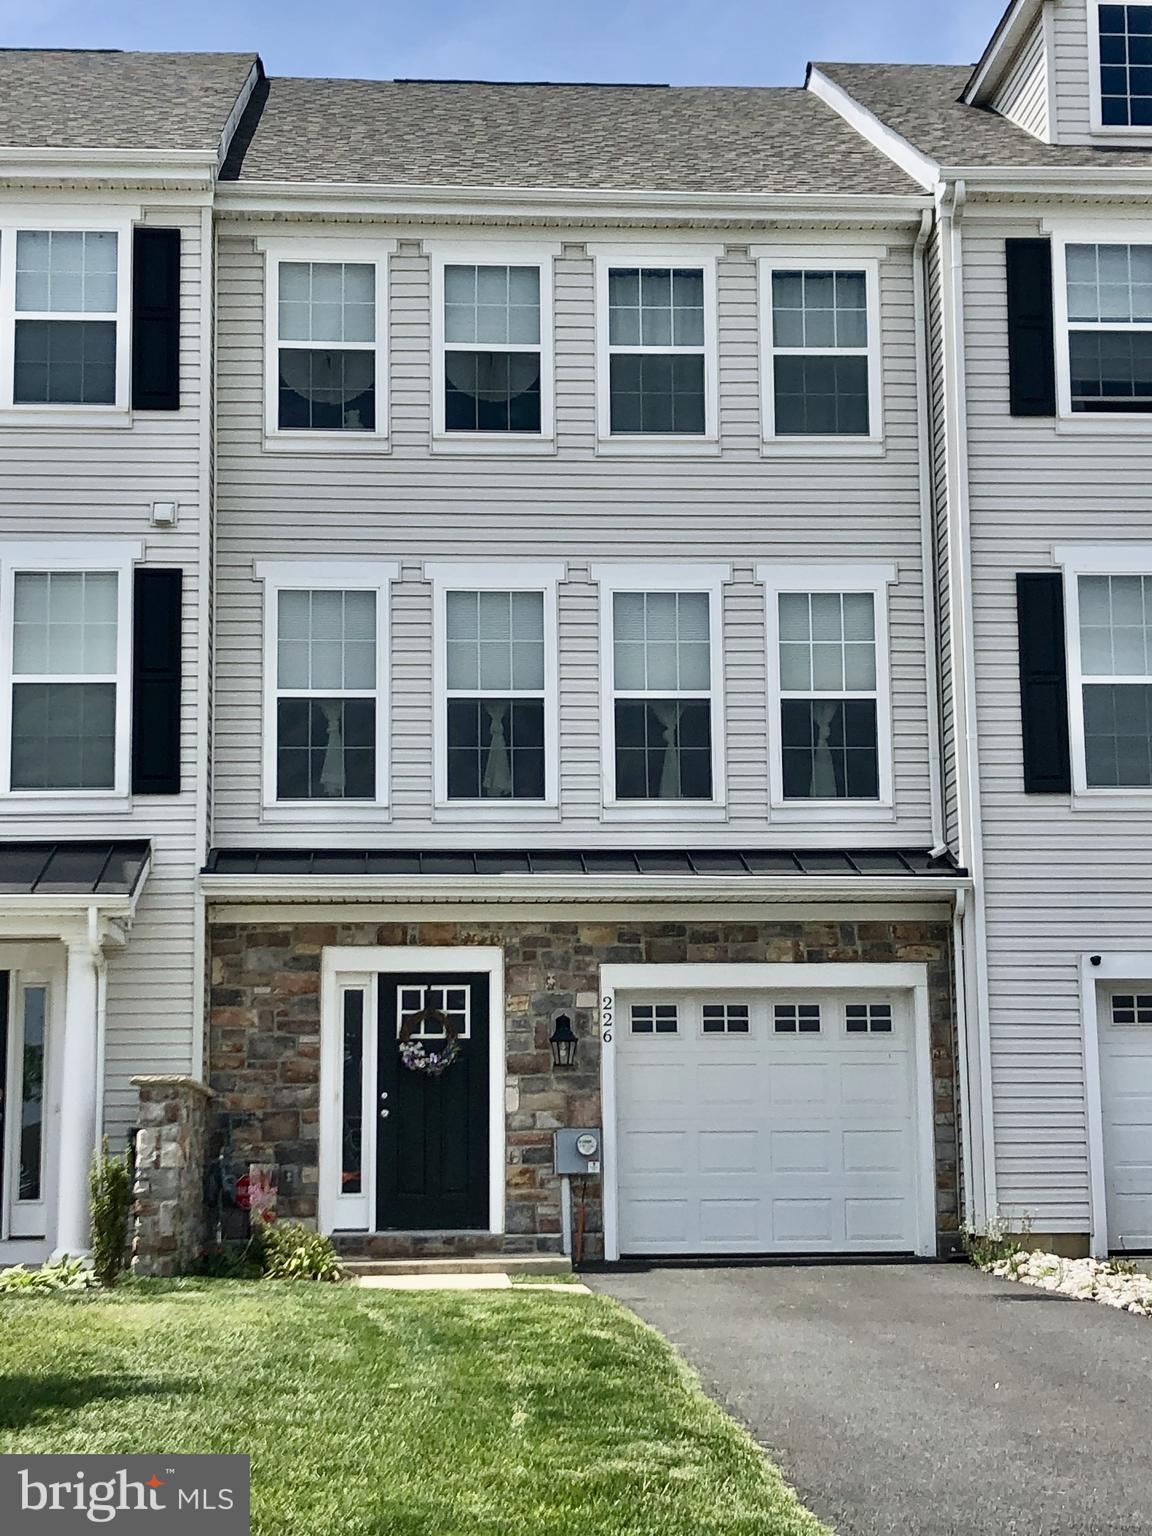 Visit this home virtually: http://www.vht.com/434101365/IDXS - Welcome home to 226 Rutland in the highly sought after Ponds Of Odessa and the Appoquinimink School district! This ageless architectural designed, 3-Story partial stone veneer townhome is one of the best, if not the best, in the area. Why wait for new construction when you can buy this lovely home with that hard to find 4th bedroom option for under $300k? The large brightly lit entry foyer leads to the 1 car garage then to the full finished basement that can be used as a 4th bedroom since it has the required closet and door to qualify. This level is complete with a sectioned off area with plumbing roughed in for a future bathroom that the new homeowner can add to their liking. Enjoy entertaining on the main level in the large open concept living room (with a portable electric fireplace), dining room combo adjacent to the eat-in kitchen. The kitchen is a chef's delight that features ample cabinets, a pantry, breakfast nook and included stainless steel appliances. For outdoor entertainment and grilling walk through the sliders off the kitchen to a 14 x 12 deck. Upstairs you'll find 3 nice sized bedrooms that include a master bedroom with a ceiling fan, walk-in closet, and owners bath. The other two bedrooms share a hallway bathroom and there's also a nice size hallway closet. For added convenience the washer and dryer (included) are also located on this level. The central location of this community means easy commute to major highways, shopping, dining, pubs and more. It's less than 2hrs away from the Delaware beaches. Schedule your appointment toady! Note: Square footage & room dimensions are approximated.